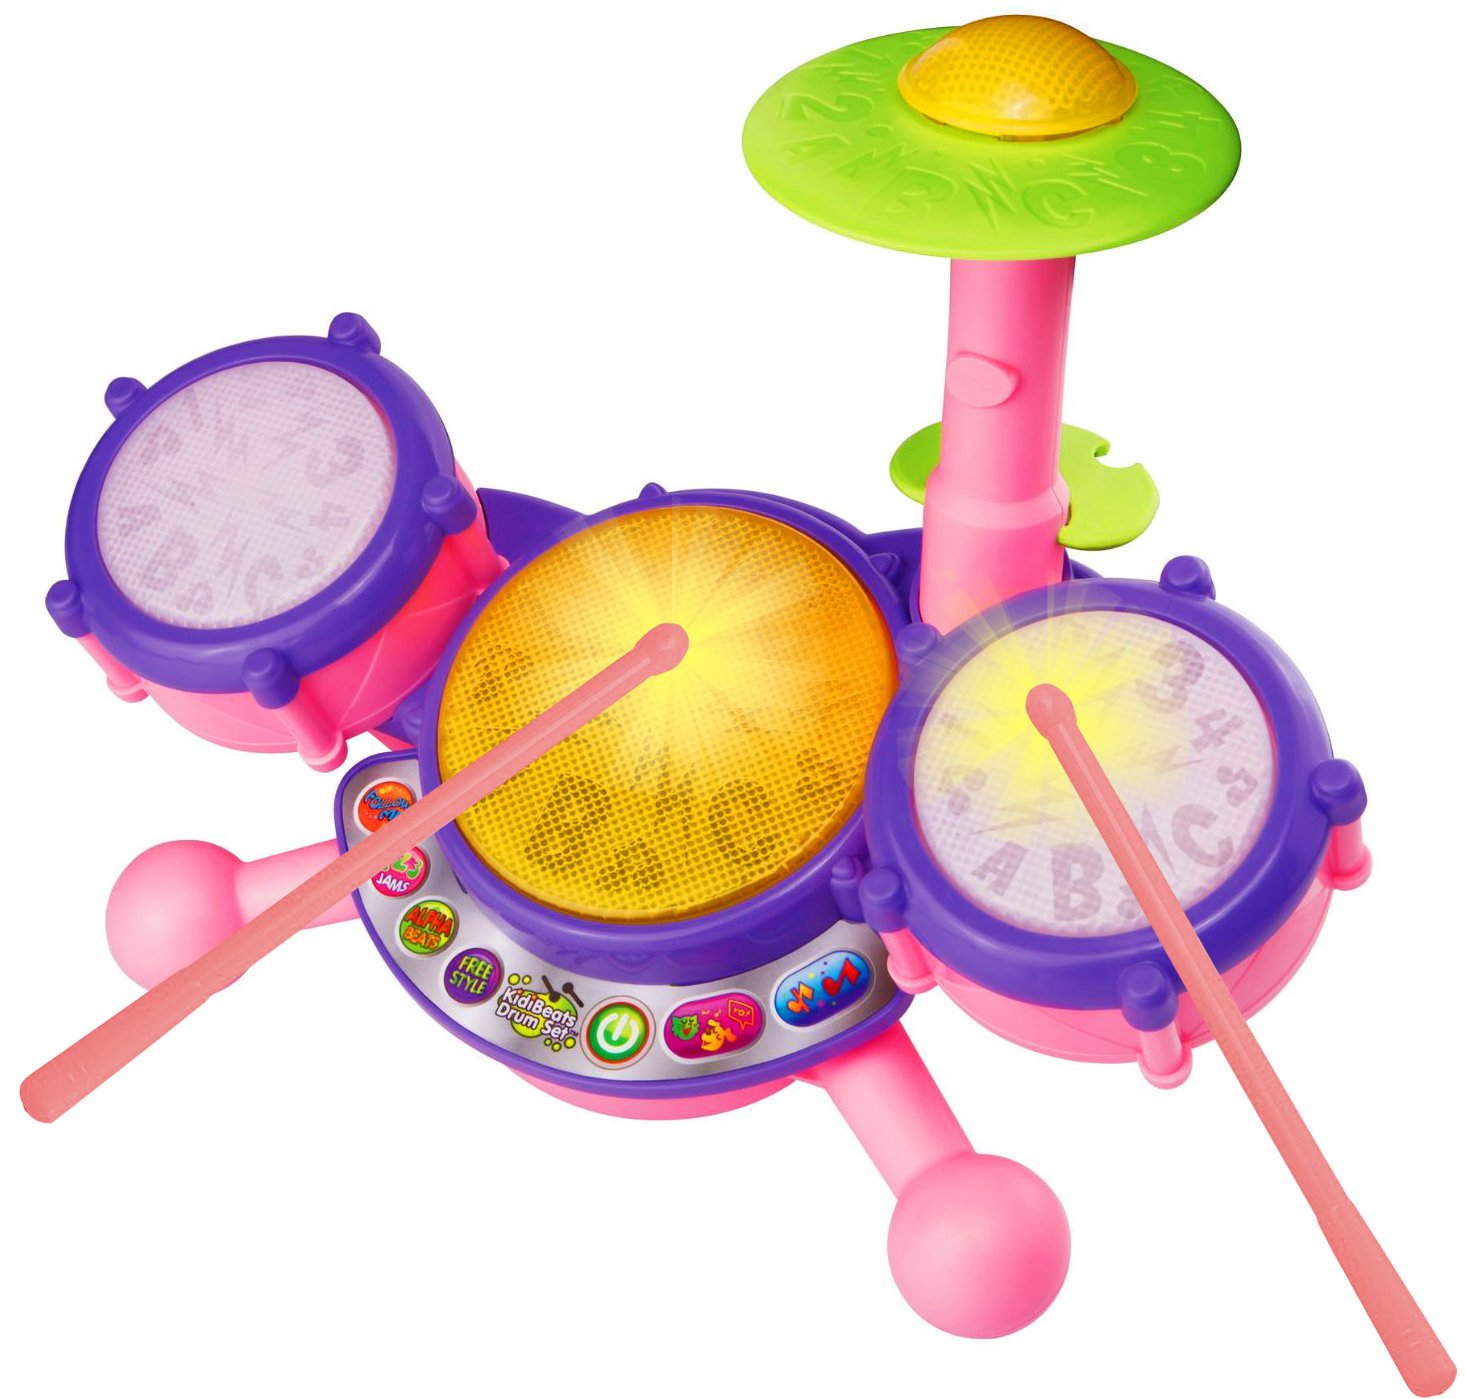 Musical Toys For Toddlers : Vtech kidibeats pink exclusive drum set kids music girl